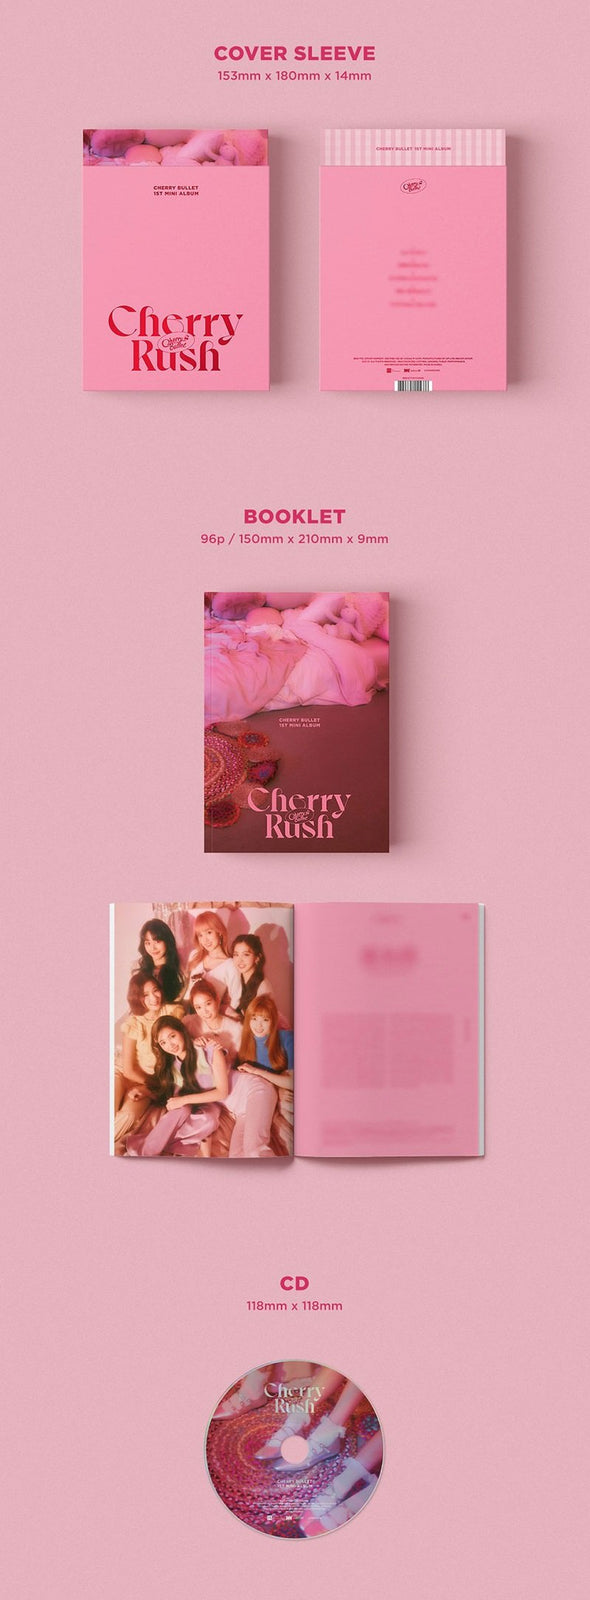 Apple Music [PRE-ORDER] CHERRY BULLET - 1ST MINI ALBUM [CHERRY RUSH]